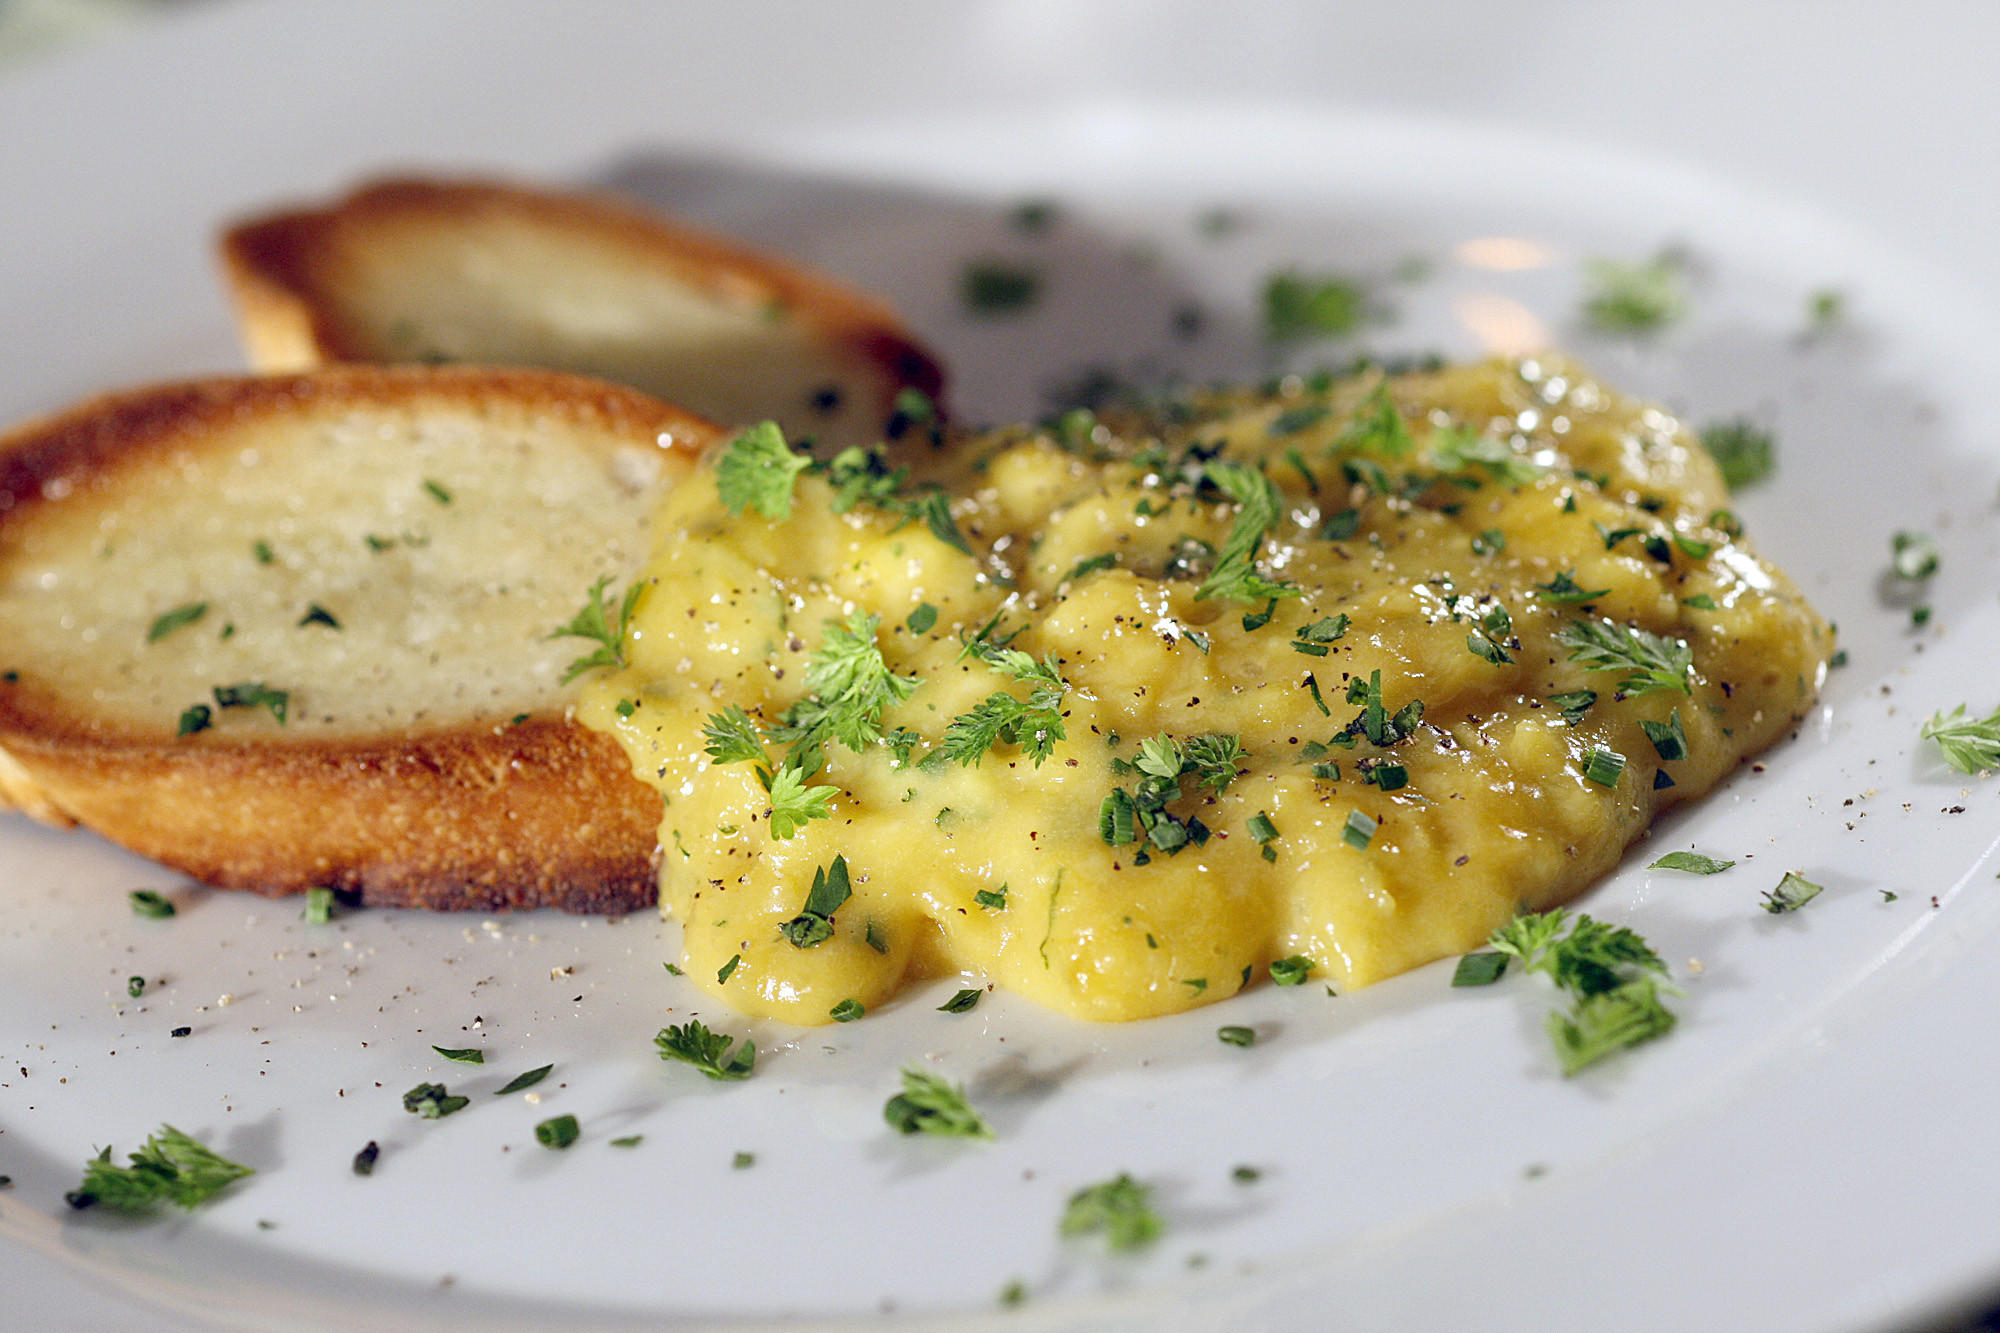 Creamy scrambled eggs with fines herbes